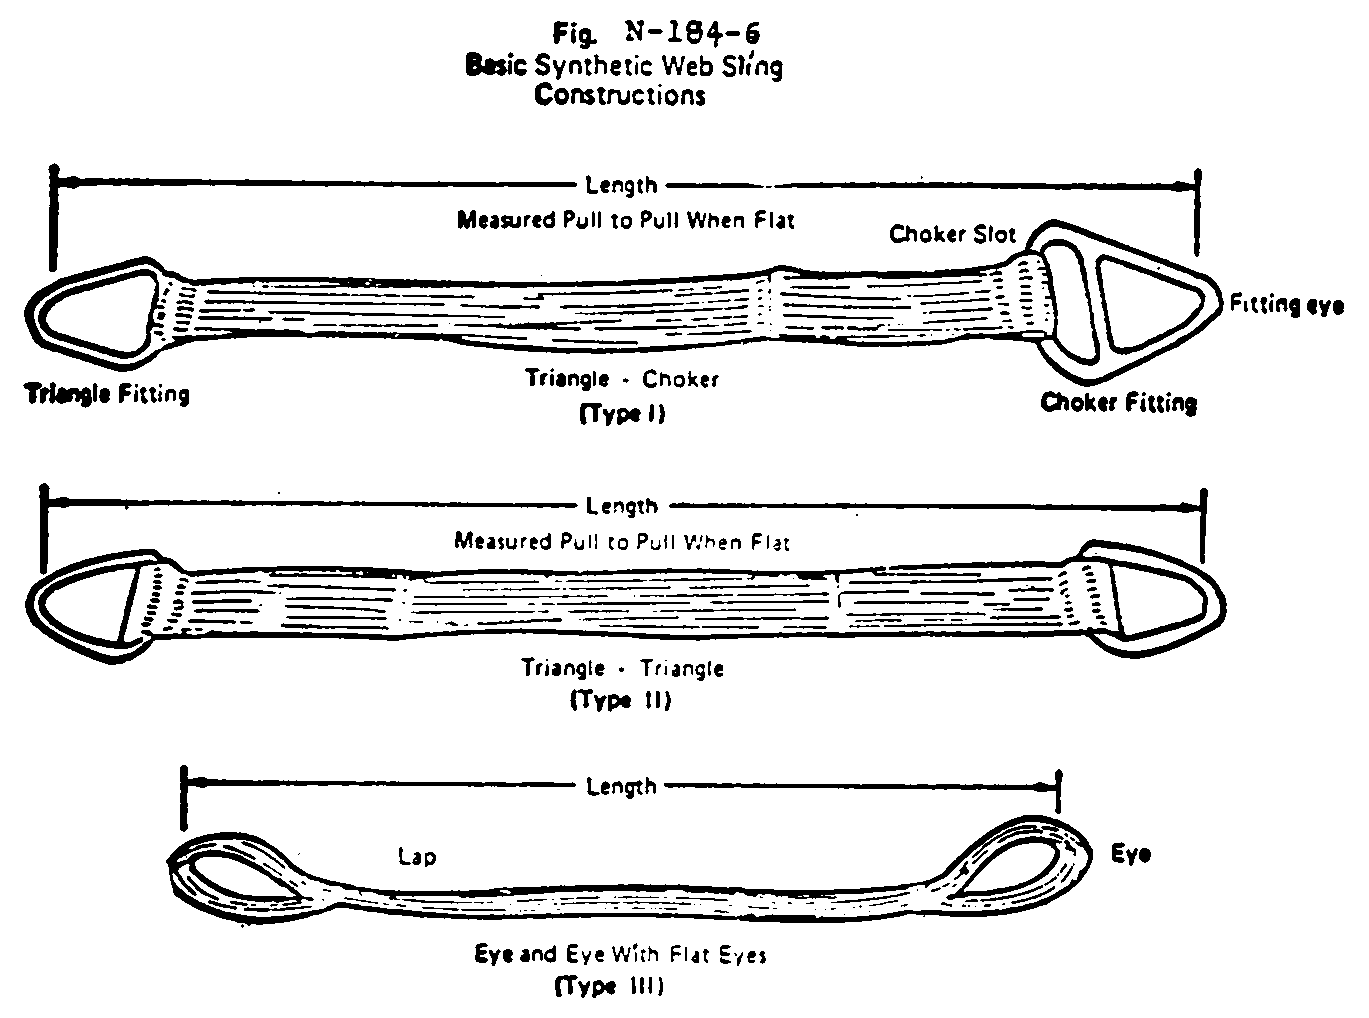 Fig. N-184-6 Basic Synthetic Web Sling Constructions. Diagram depicting three of six types of sling constructions. Type I Triangle Choker typer. Contains Triangle Fitting, measured pull to pull when flat, choker slot, choker fitting, and fitting eye. Type II Triangle Triangle. Length Measured pull to pull when flat. Type III Eye and Eye with Flat Eyes. Length between Lap and Eye.